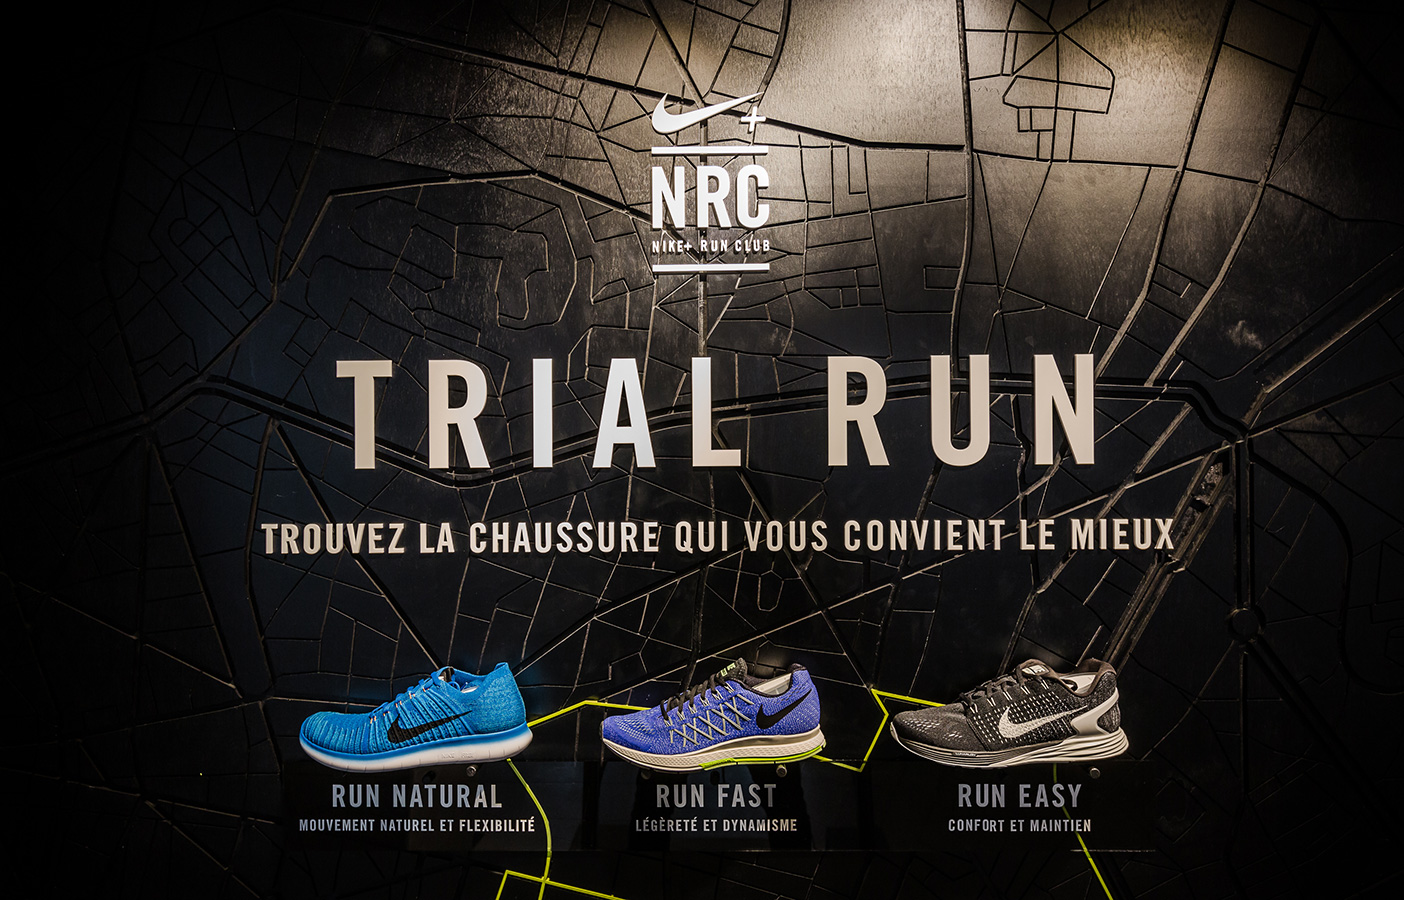 Aldworth James & Bond | Nike Store Les Halles - Trial Run map